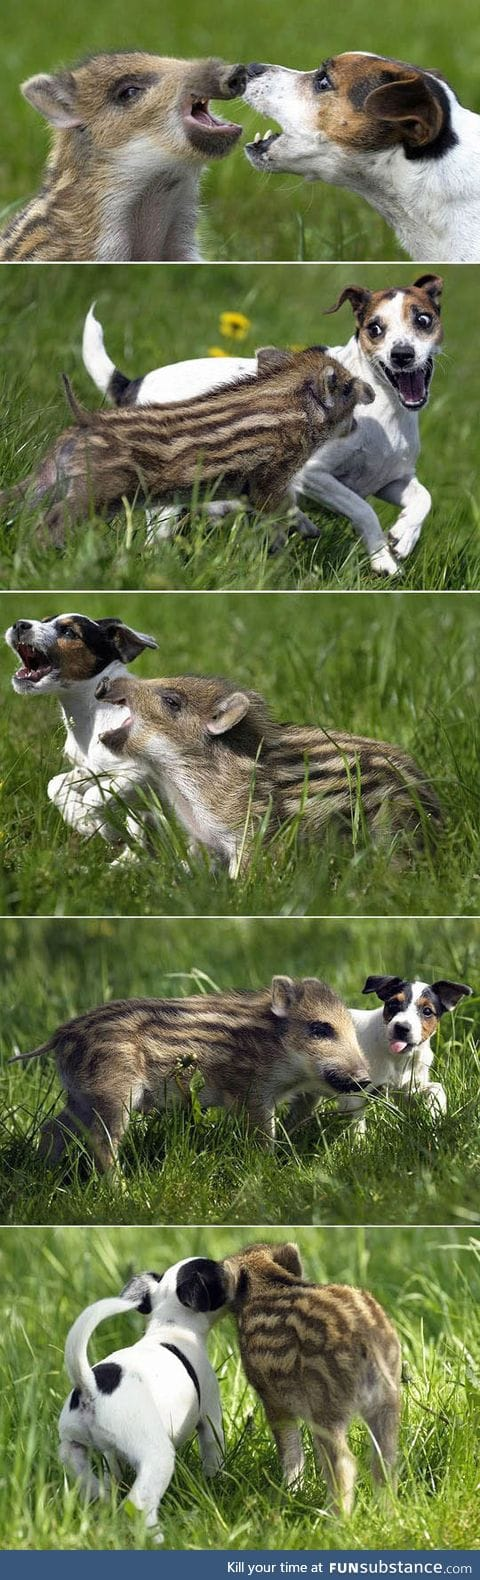 Quite the unlikely friendship